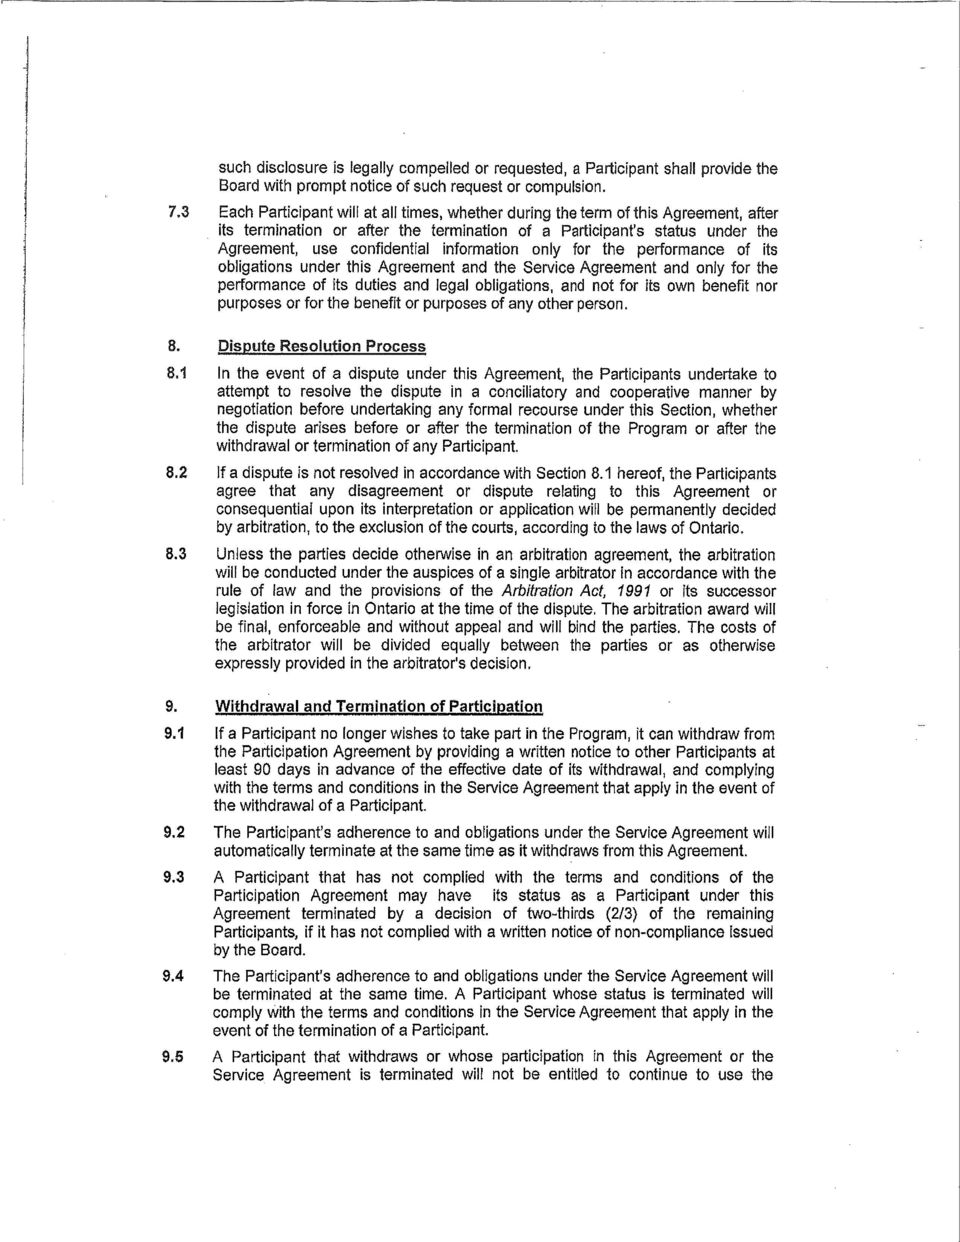 information only for the performance of its obligations under this Agreement and the Service Agreement and only for the performance of its duties and legal obligations, and not for its own benefit